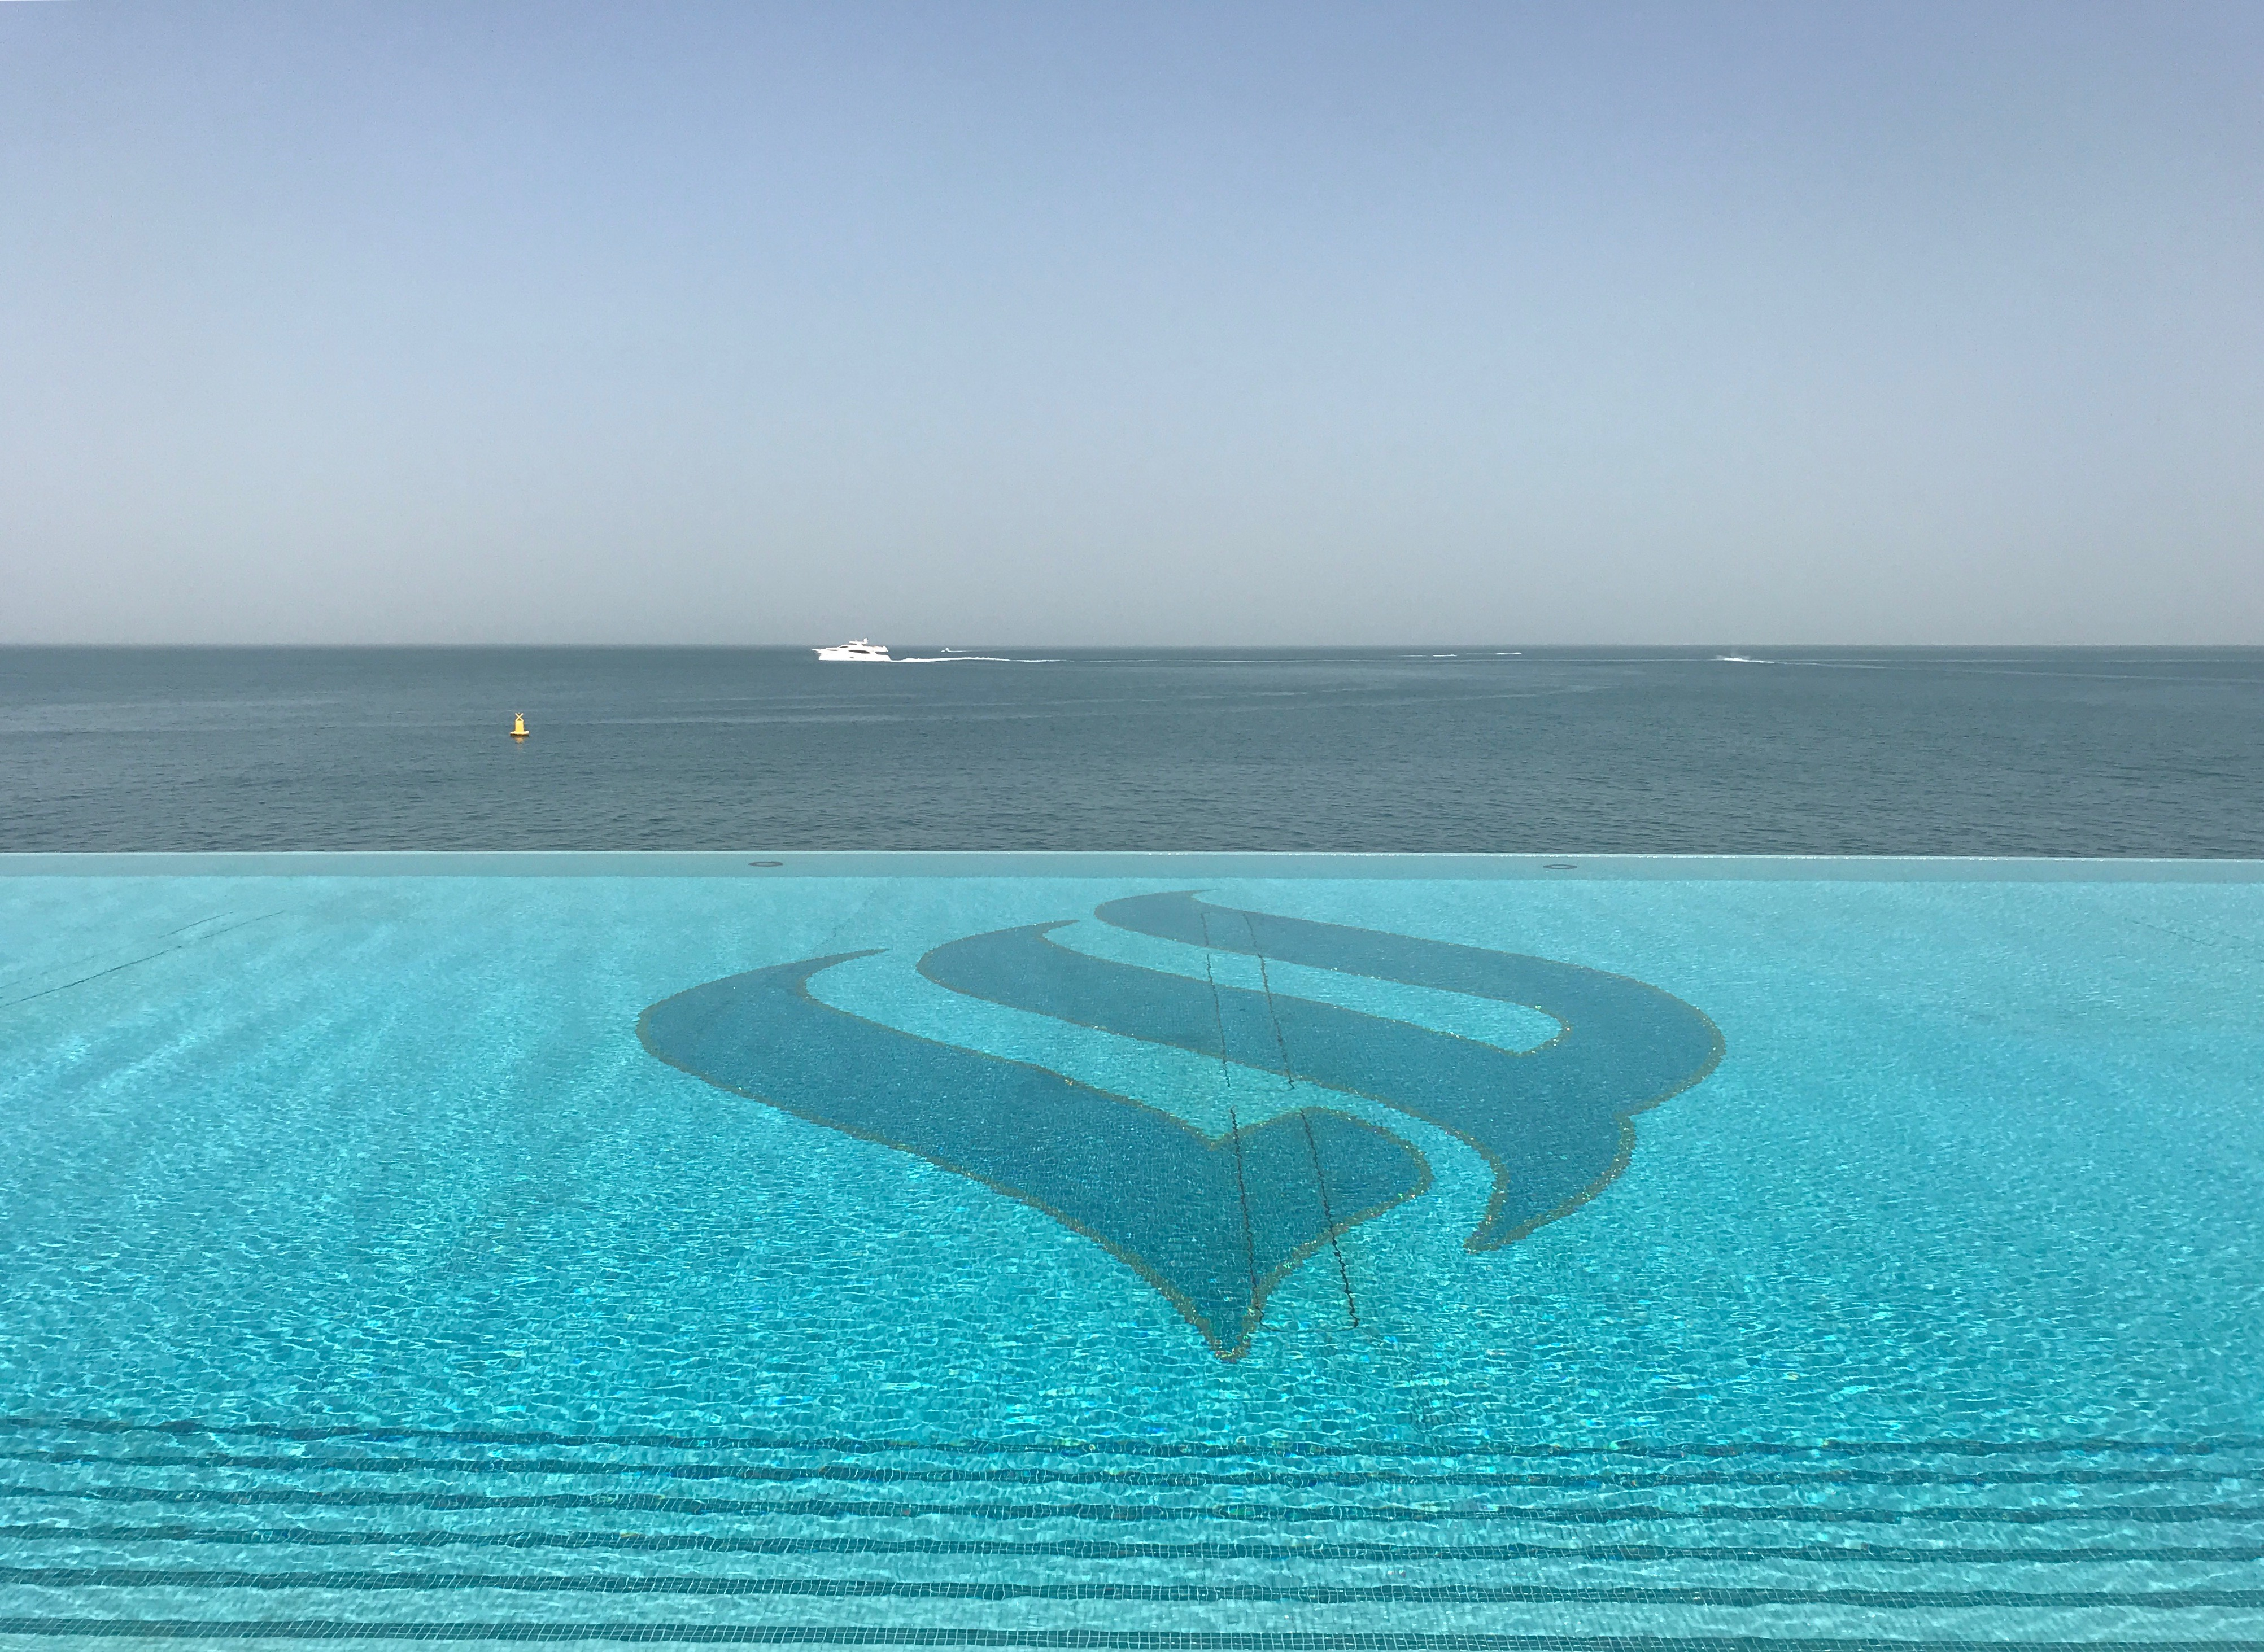 burj-al-arab-luxury-dubai-lustforthesublime